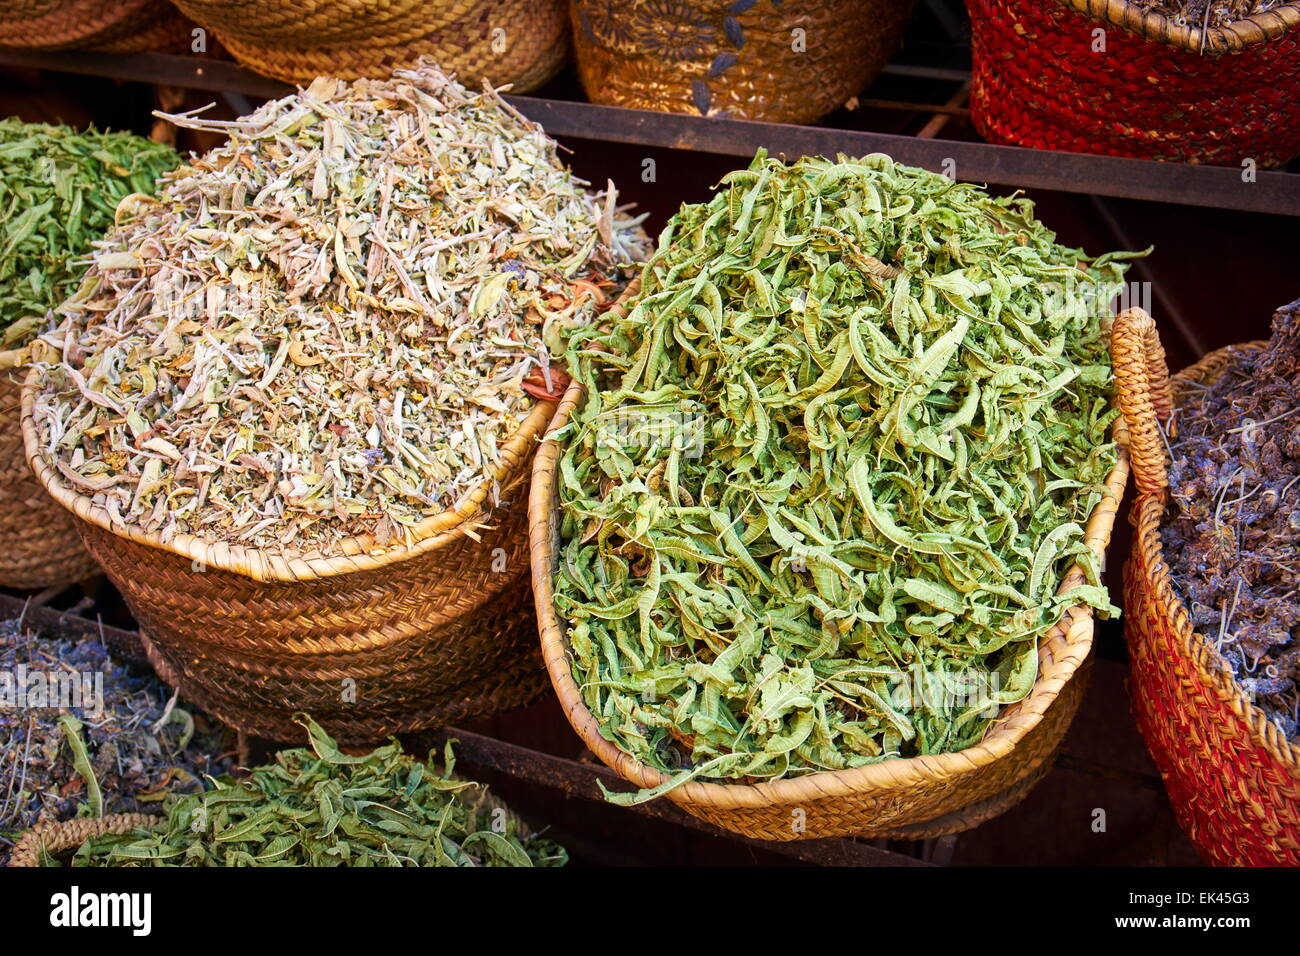 Traditional local herbs and spices, Morocco, Africa Stock Photo